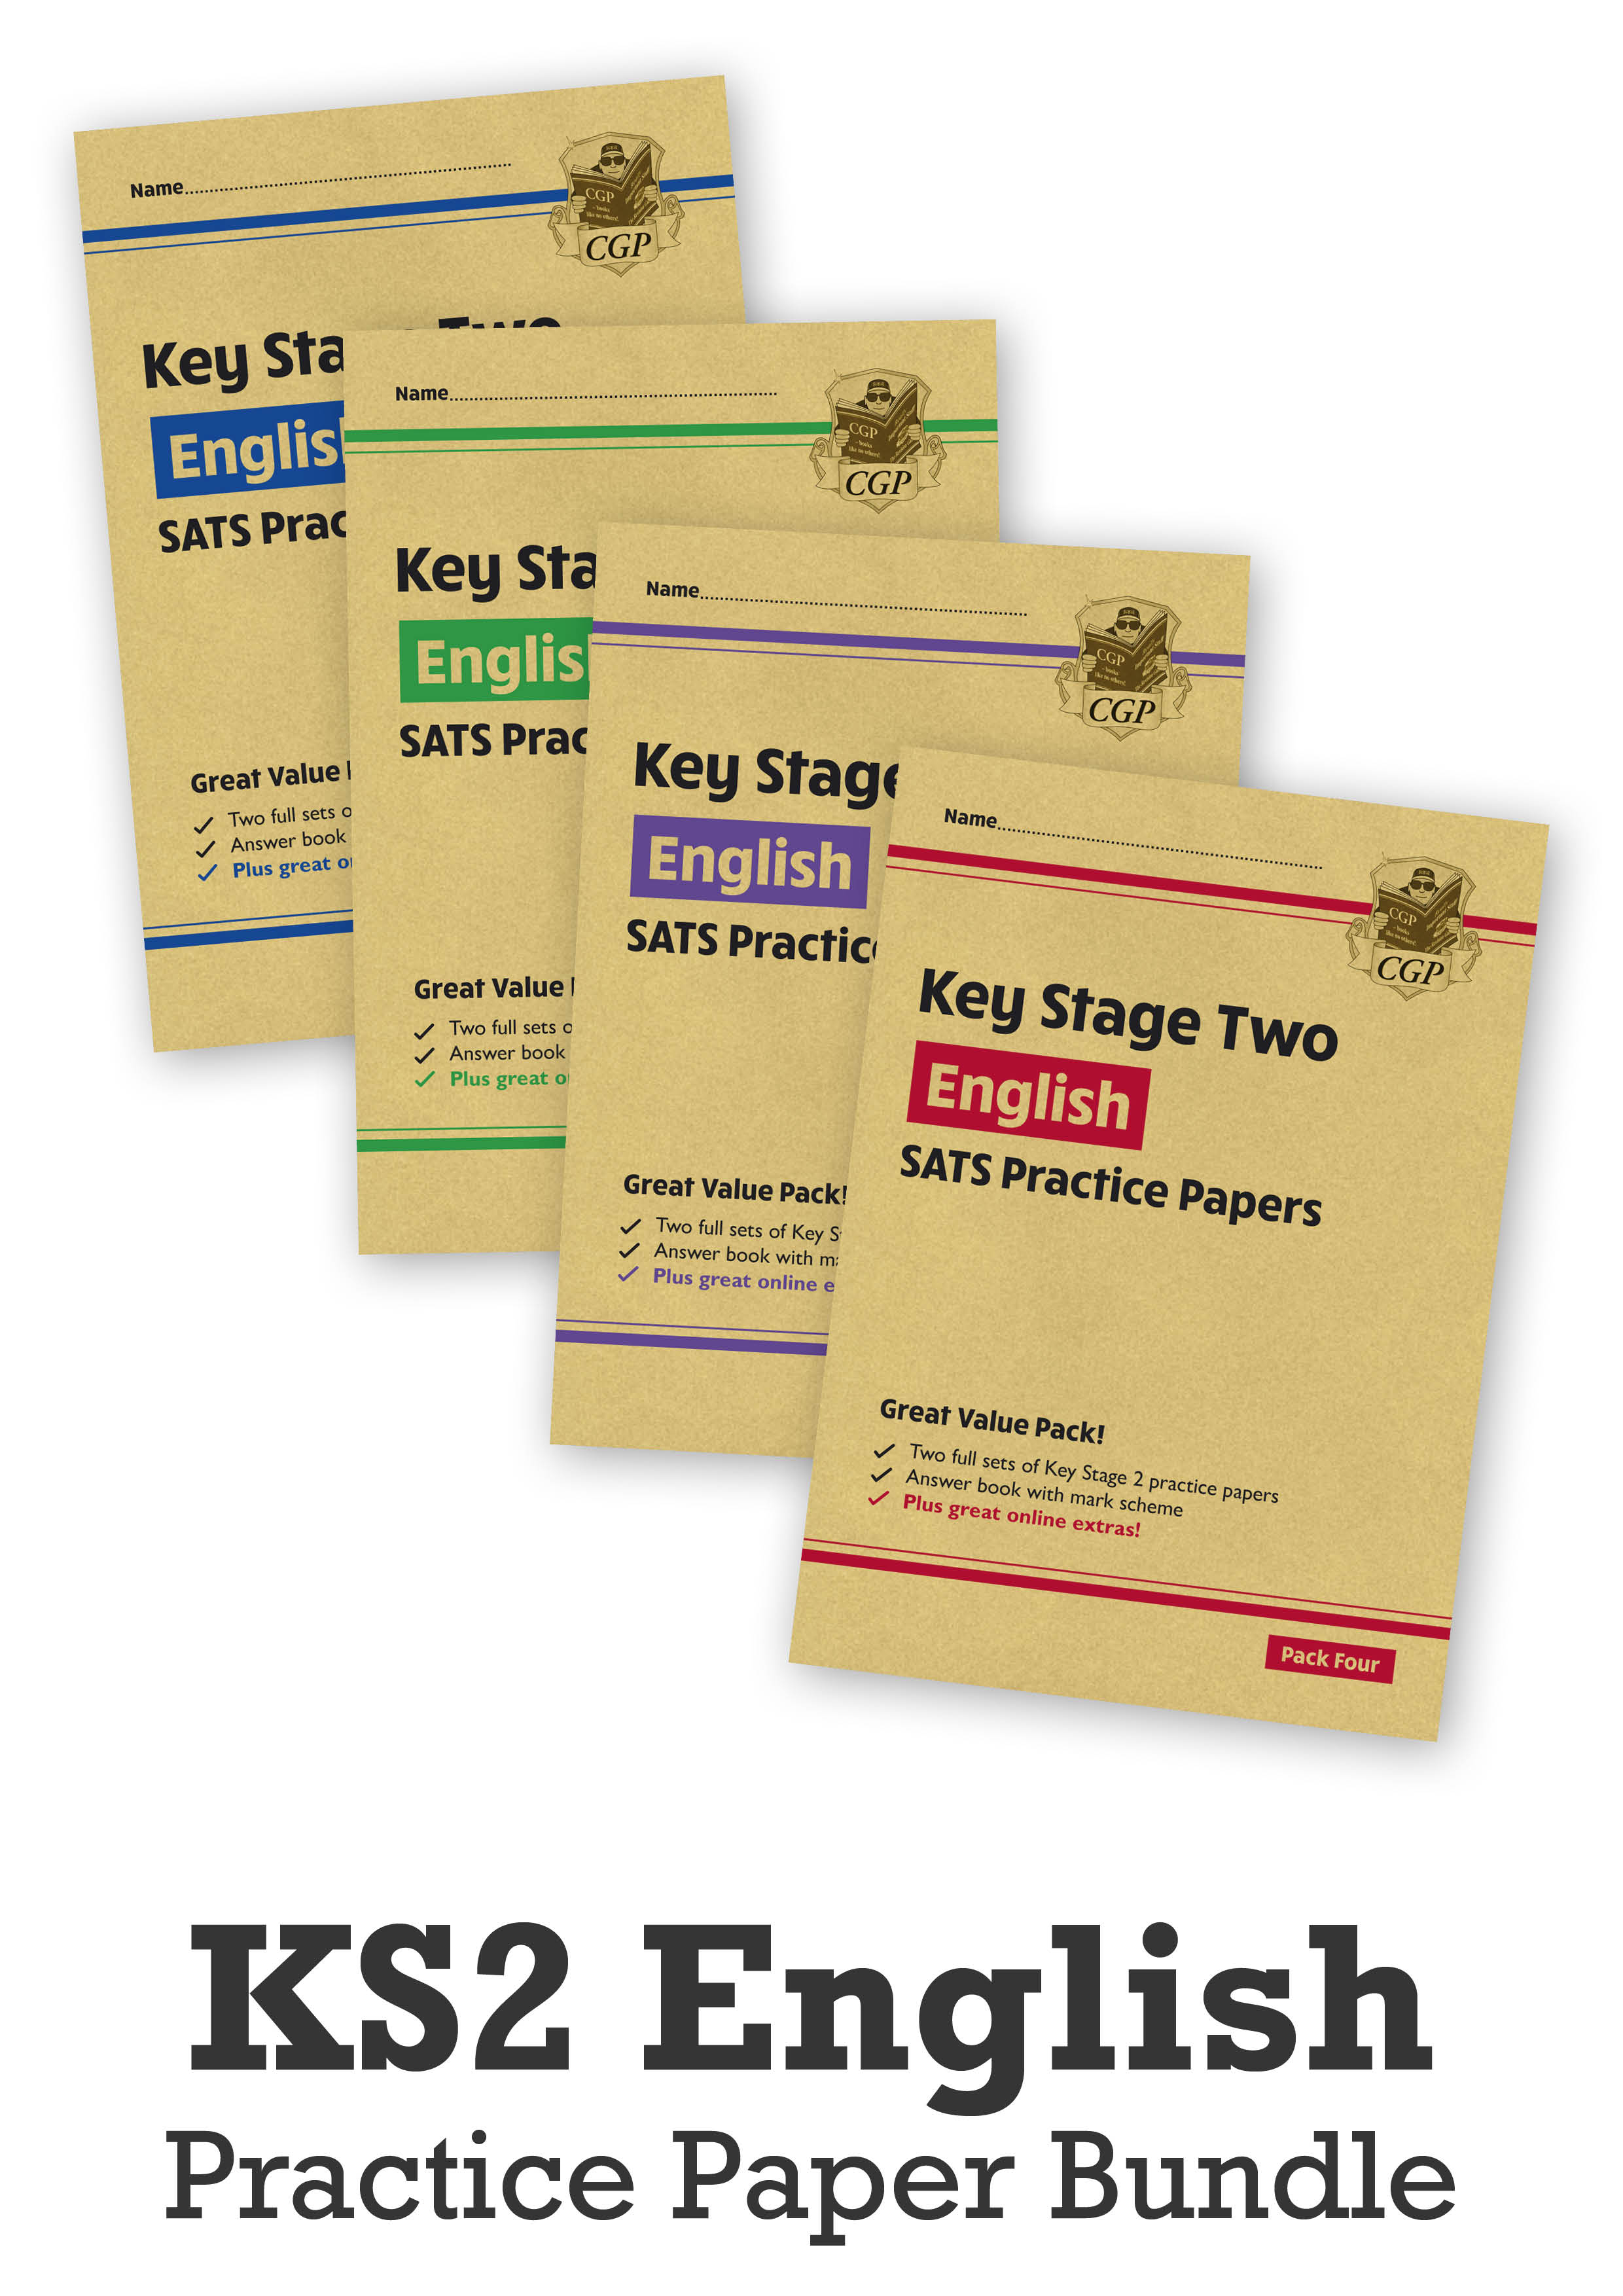 EHB4P24 - KS2 English SATS Practice Paper Bundle: Packs 1, 2, 3 & 4 (with Online Extras)